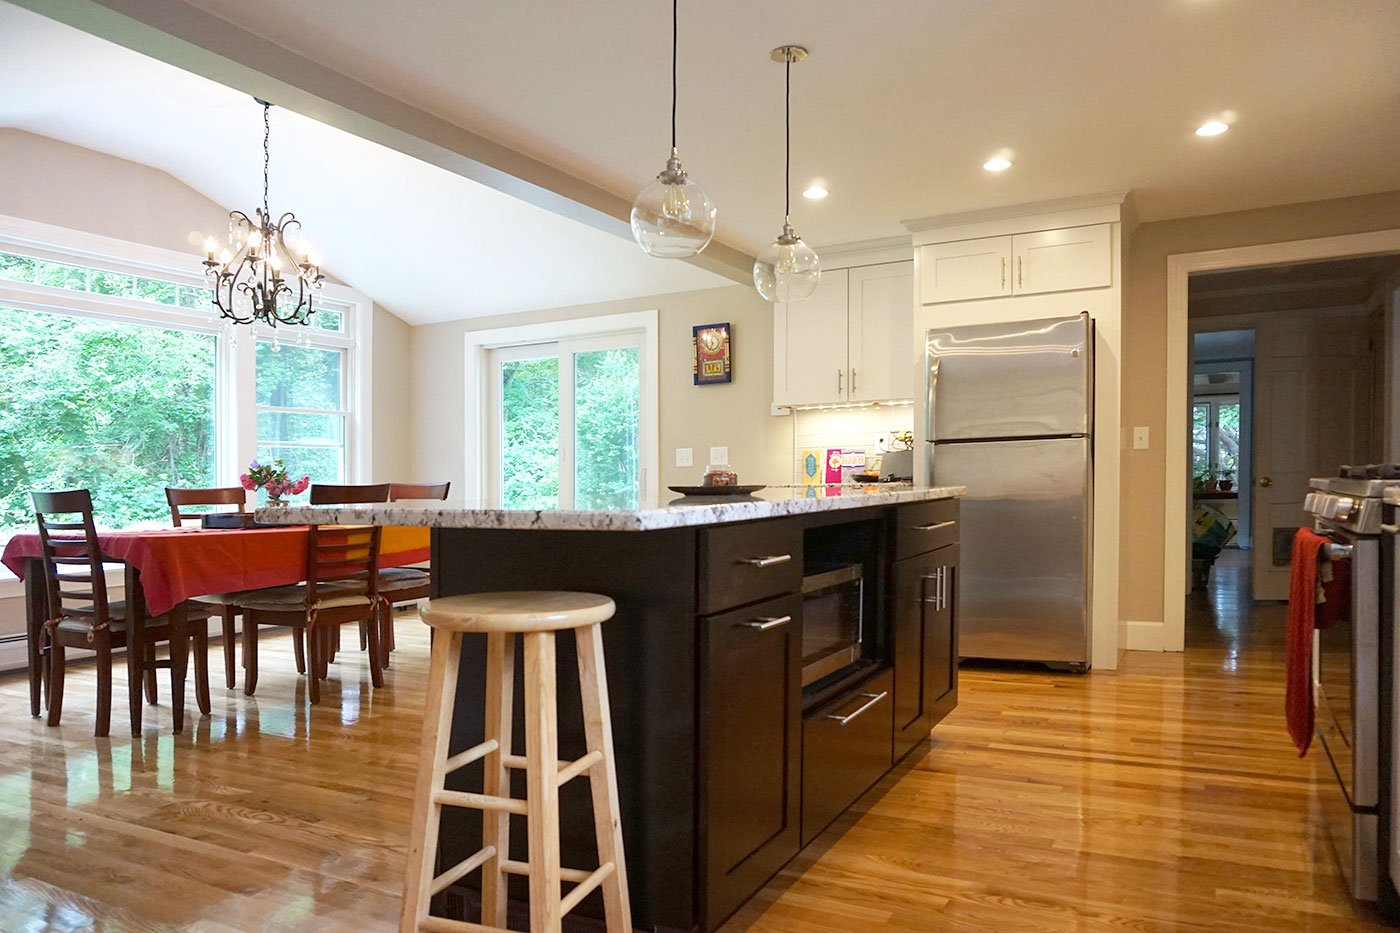 1 Home addition project by home renovation, in-house design build firm in RI`